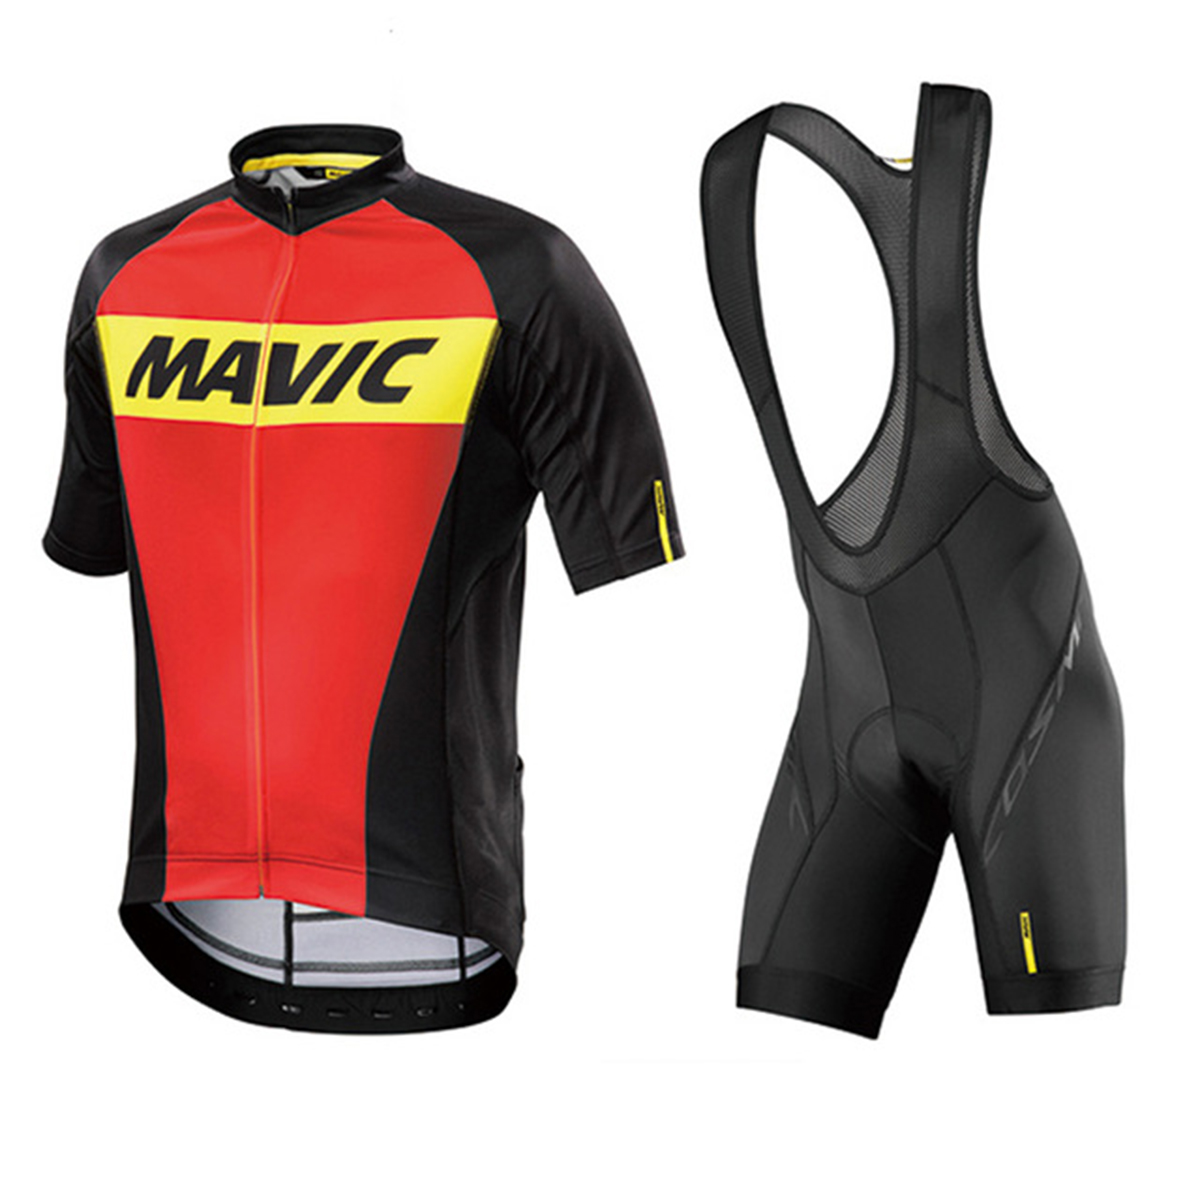 Mavic Cycling Jersey 2018 Summer Equipment Short Sleeve Quick Dry Clothes Cycling Set Bicycle Clothes Ropa Ciclismo Bib Suits